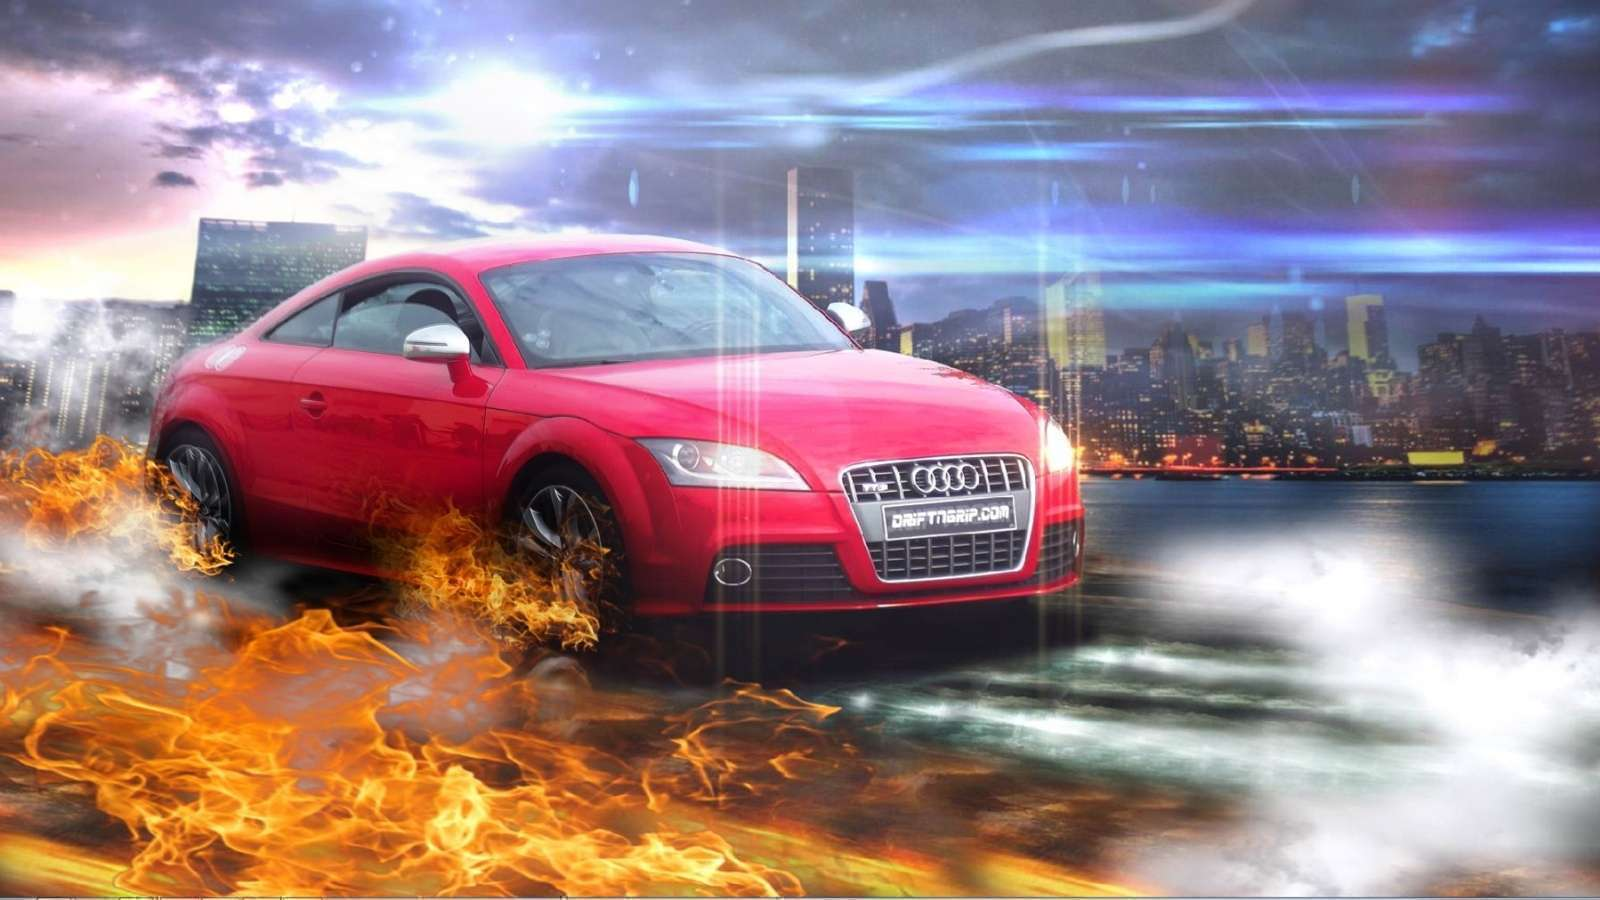 View Of Audi Red In Fire Wallpaper Hd Car Wallpapers